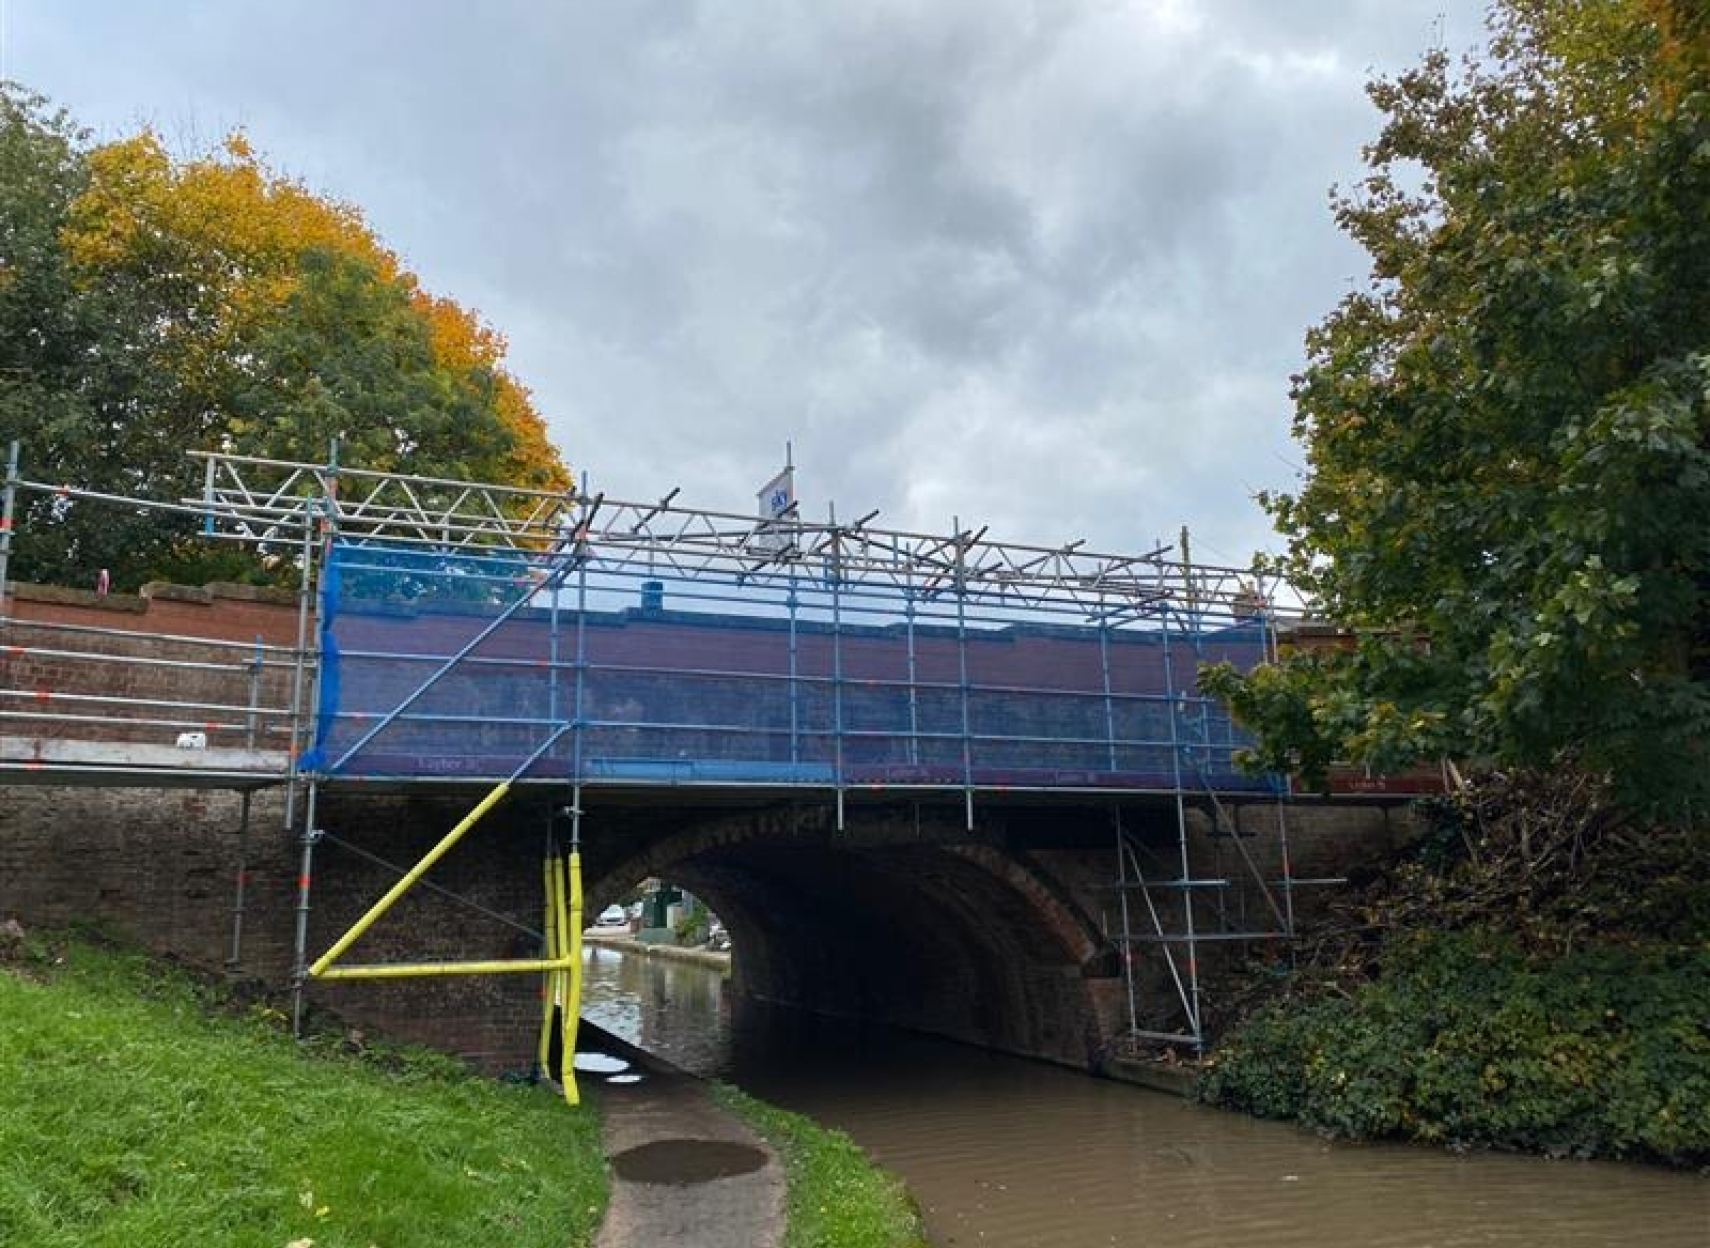 Warwick canal bridge being renovated